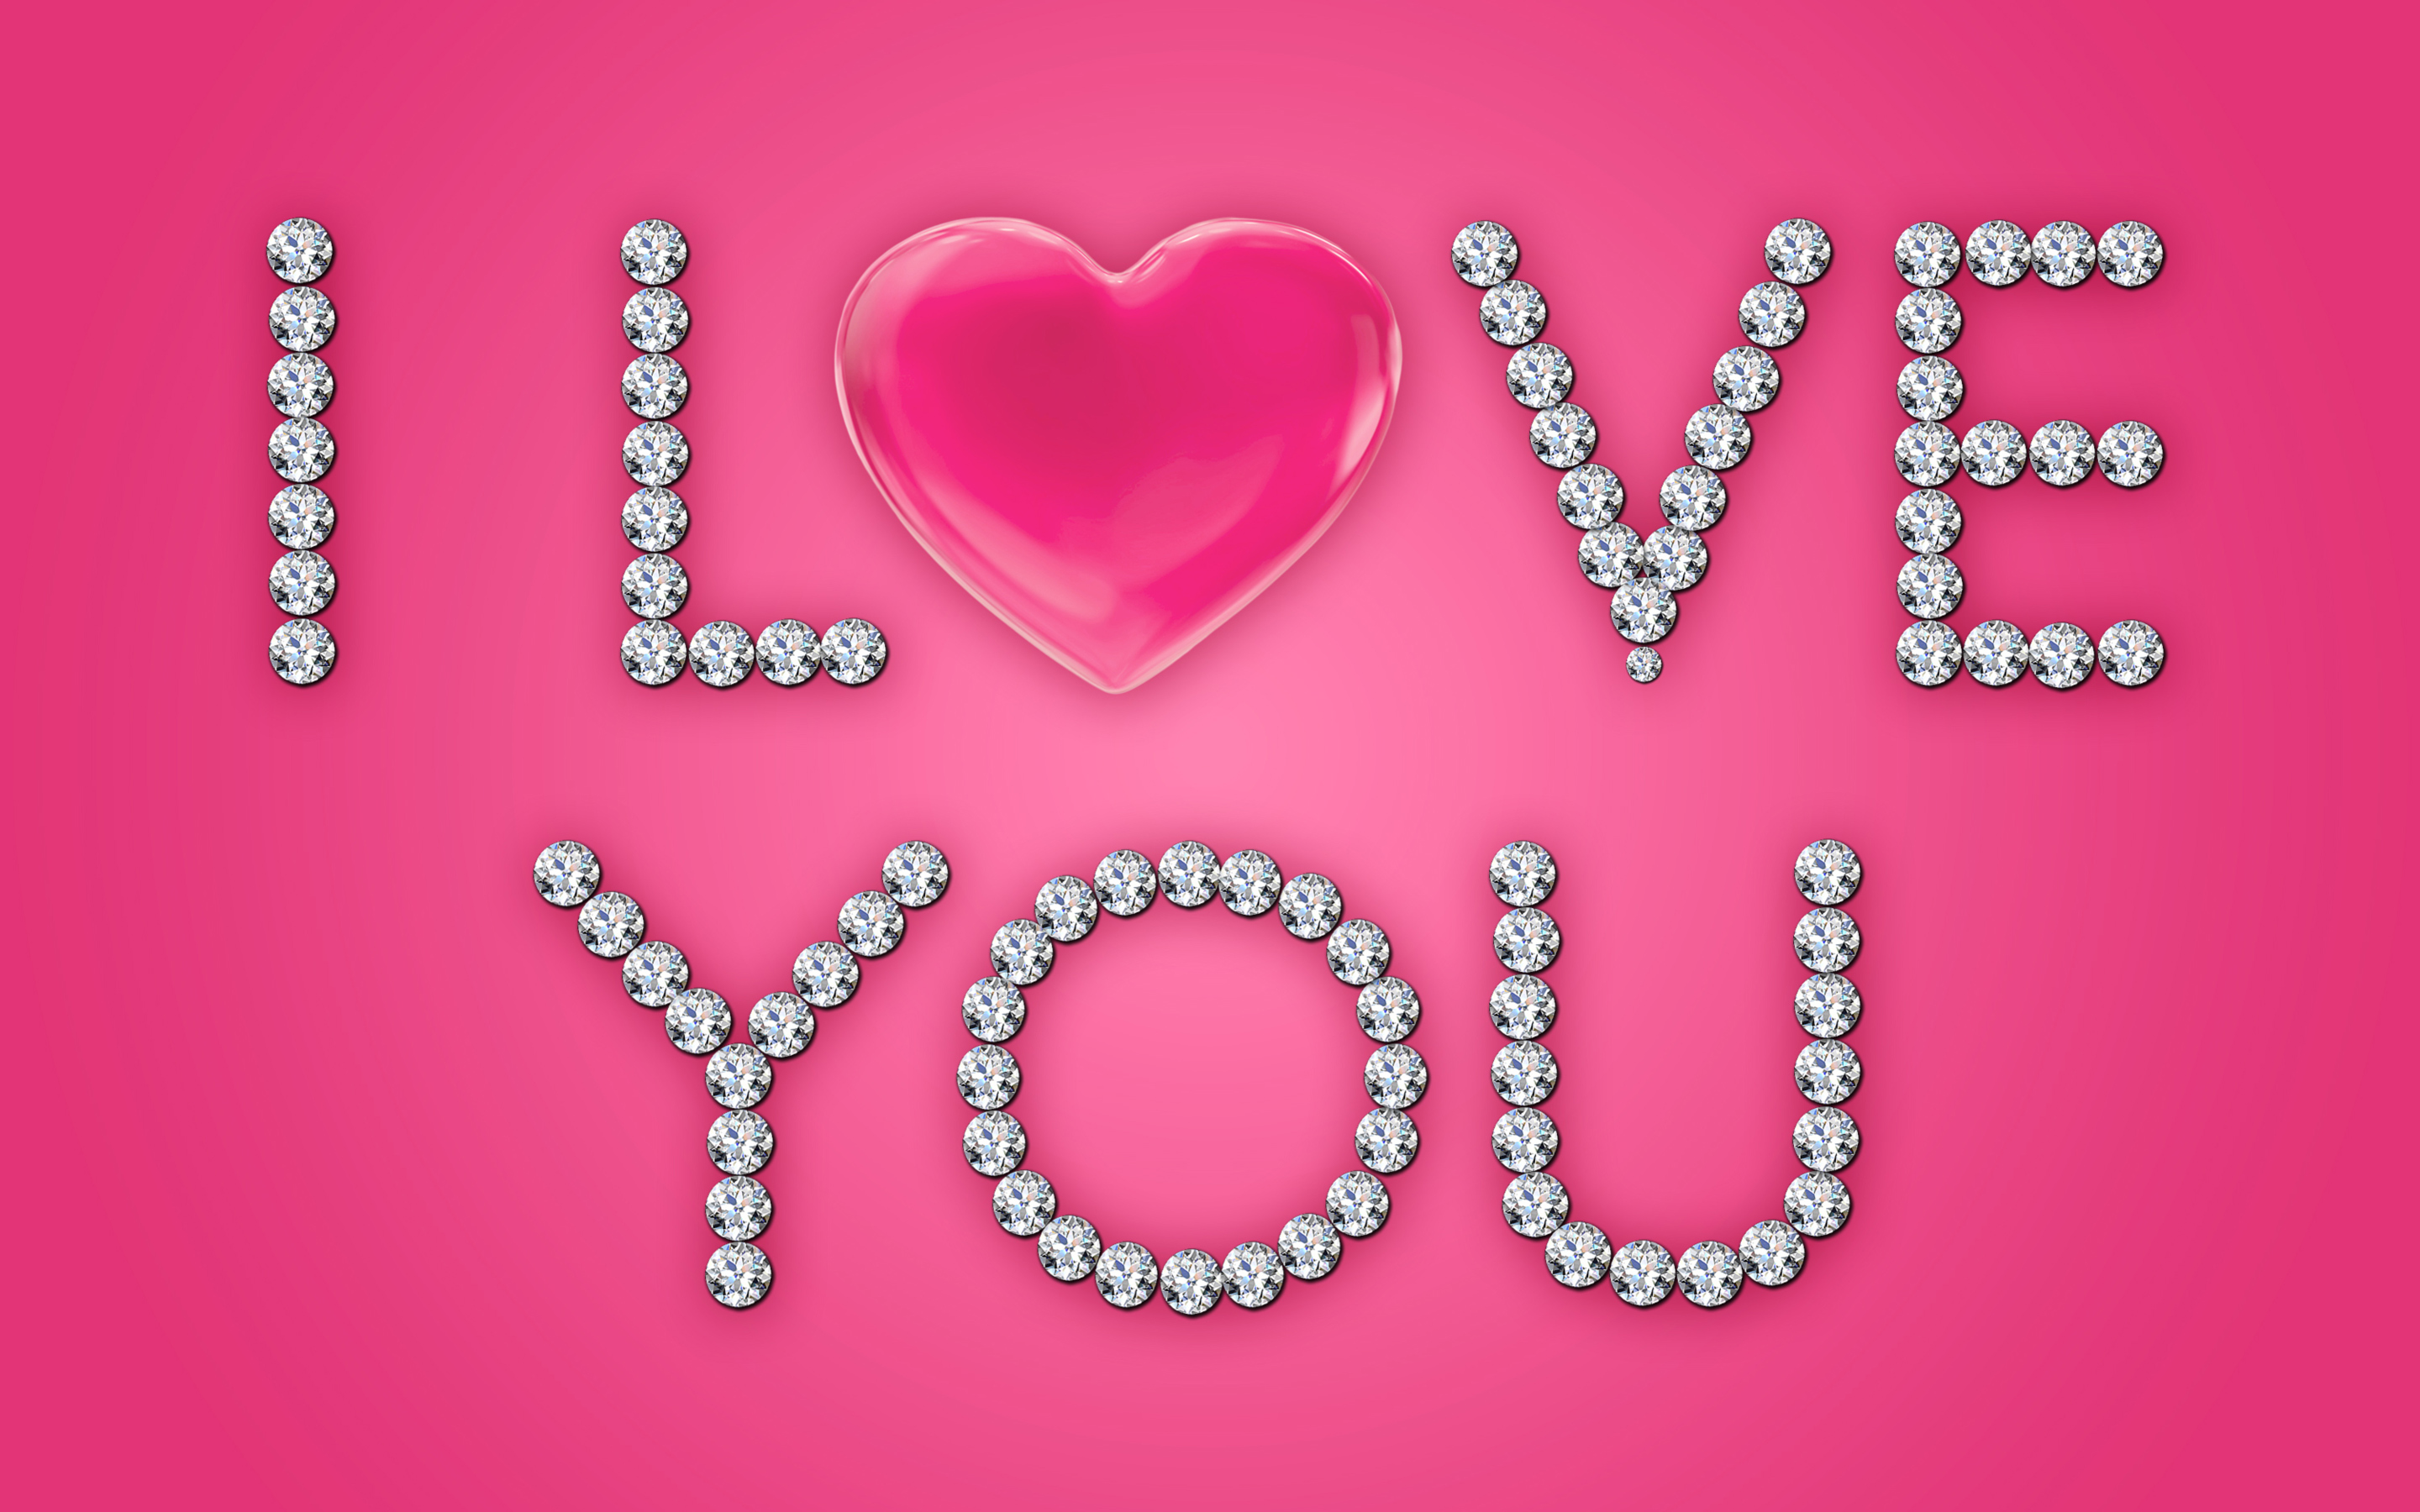 Love You Heart Diamonds Pink HD Wallpapers 2880x1800